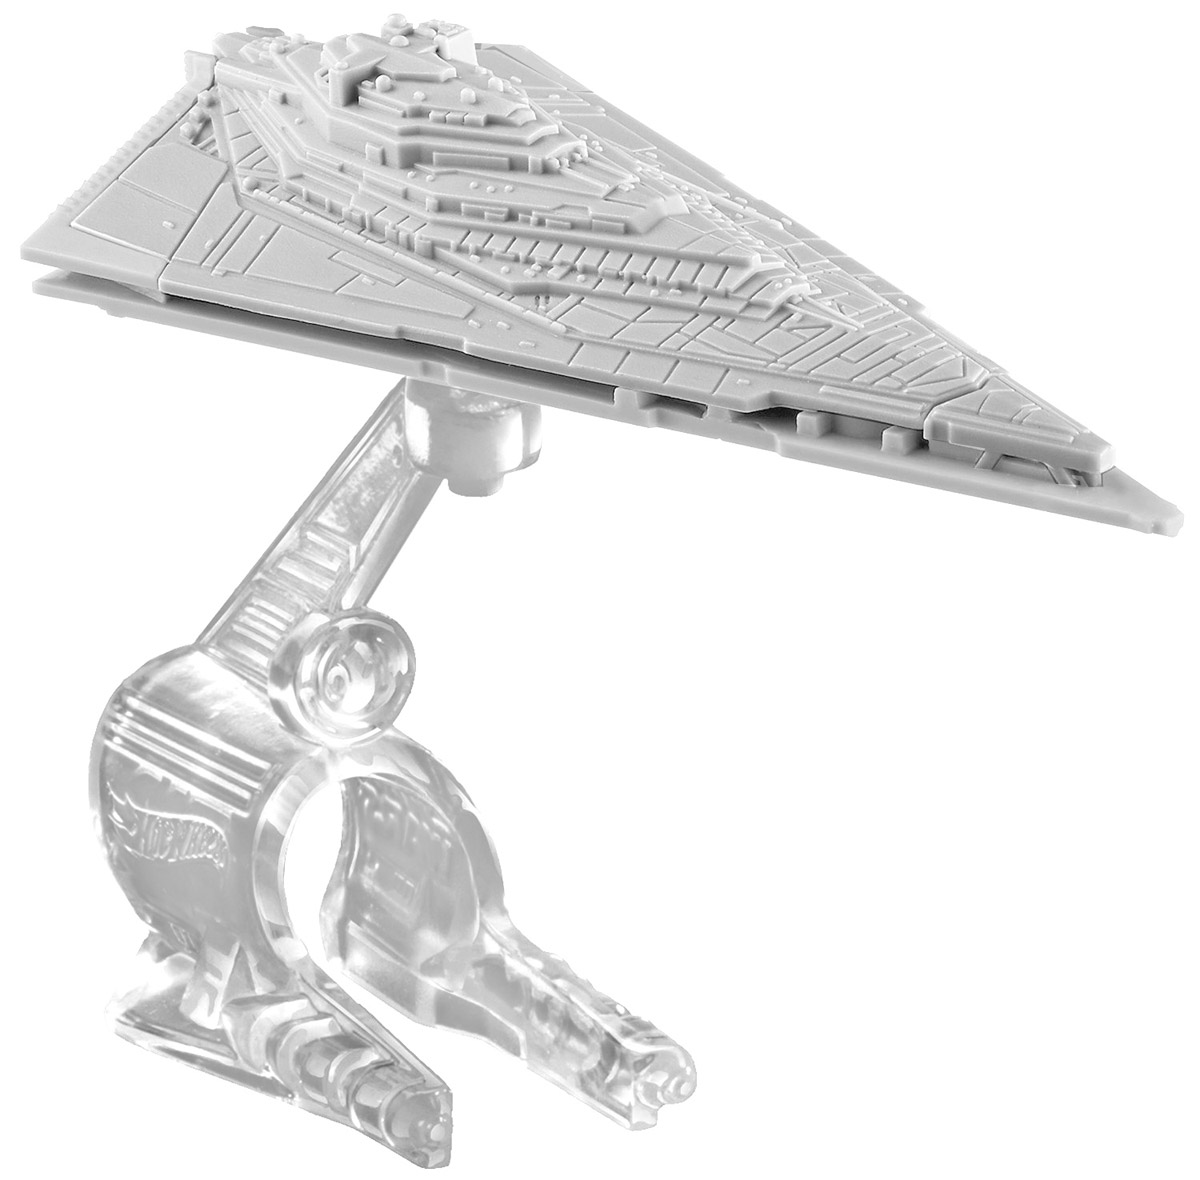 Hot Wheels Star Wars Звездный корабль First Order Star Destroyer